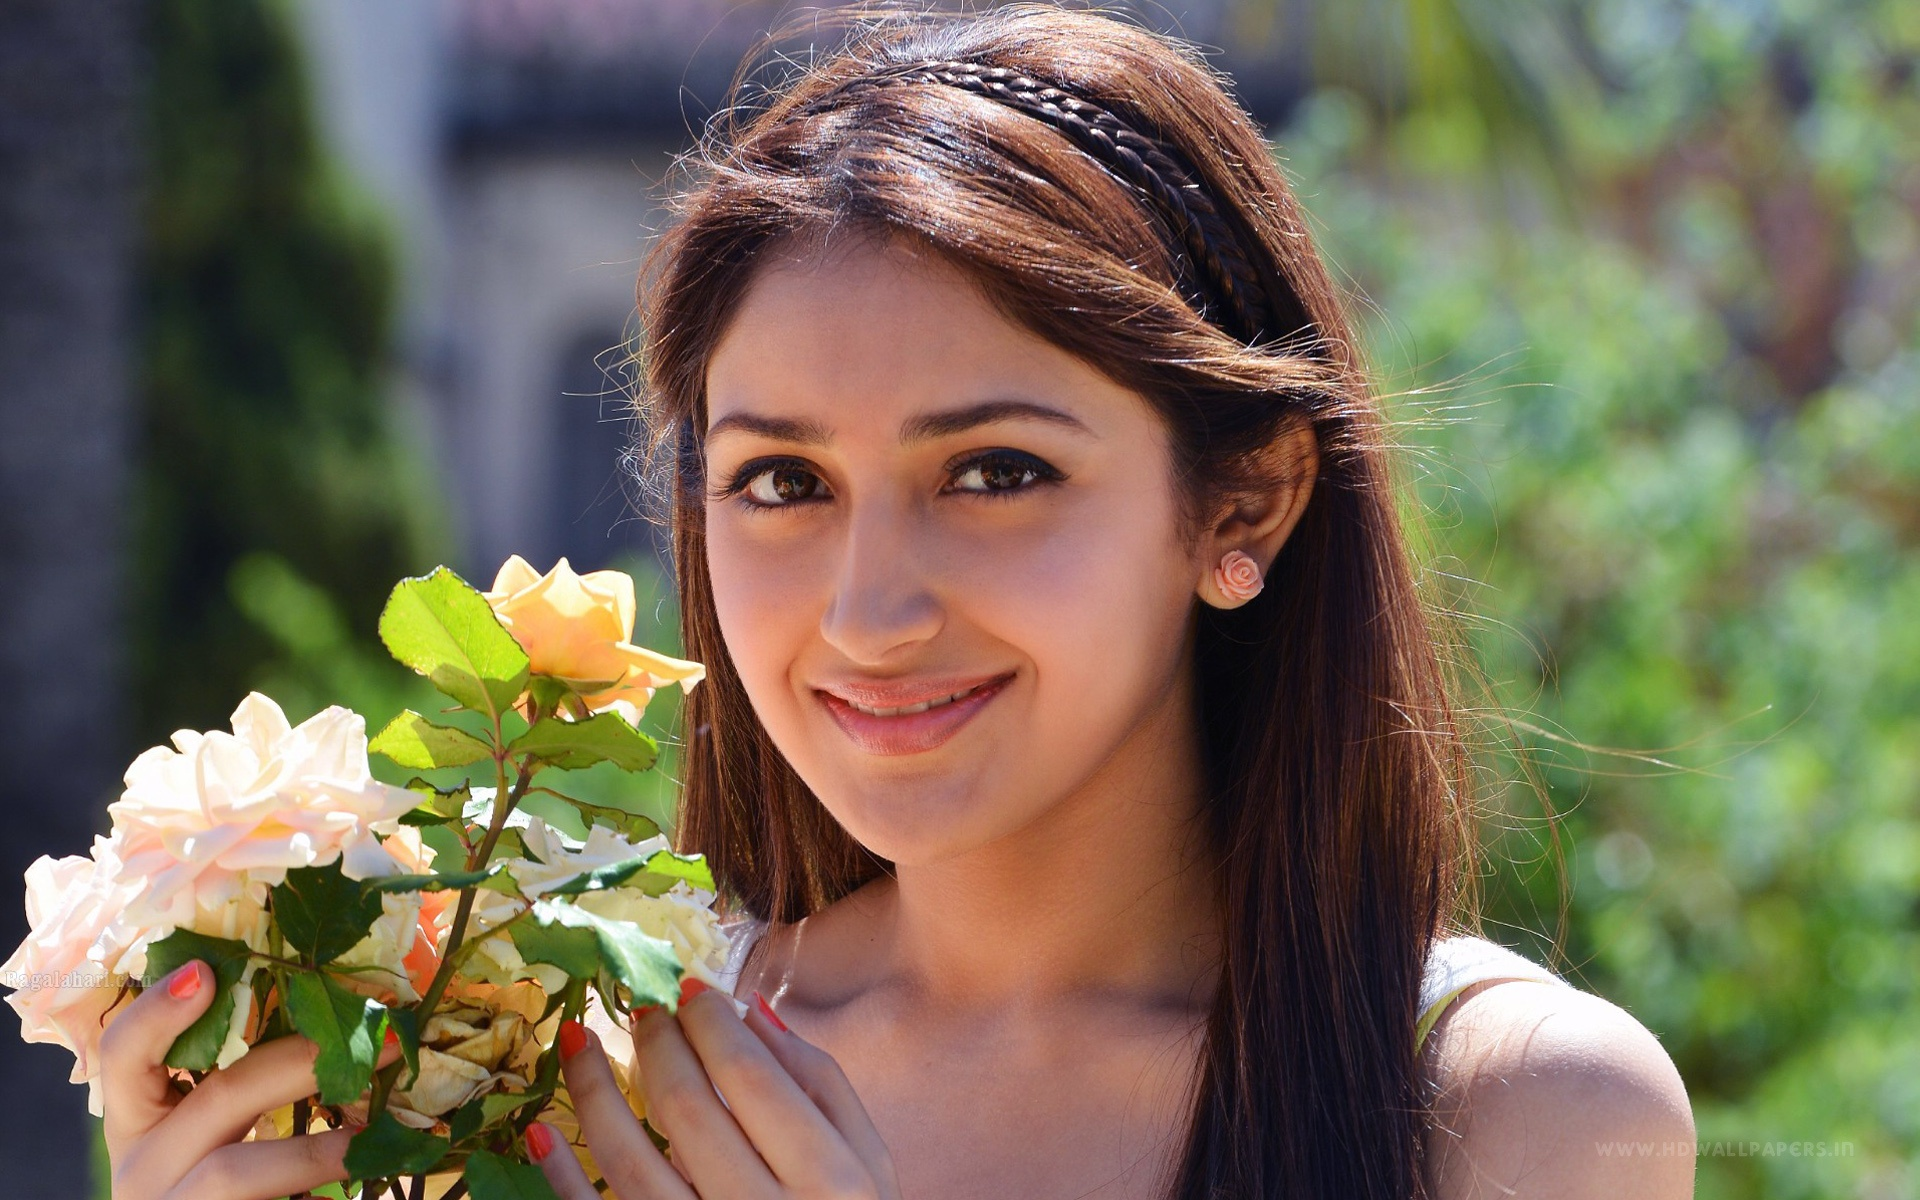 Telugu Actress Anushka Wallpapers in jpg format for free download